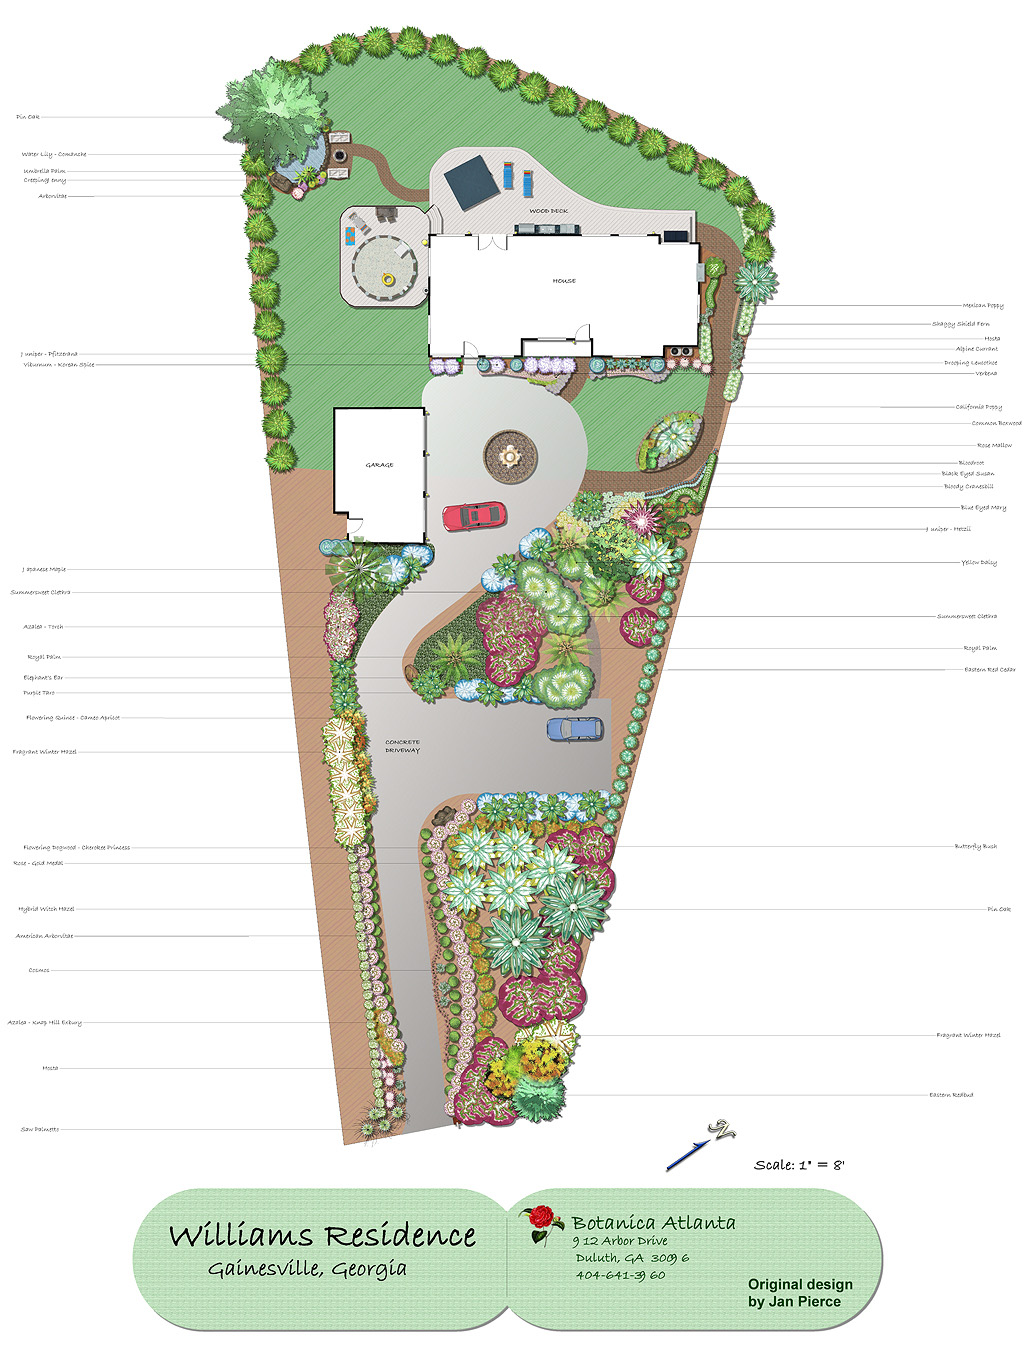 Garden Design Using Photos : Landscape design software by idea spectrum realtime